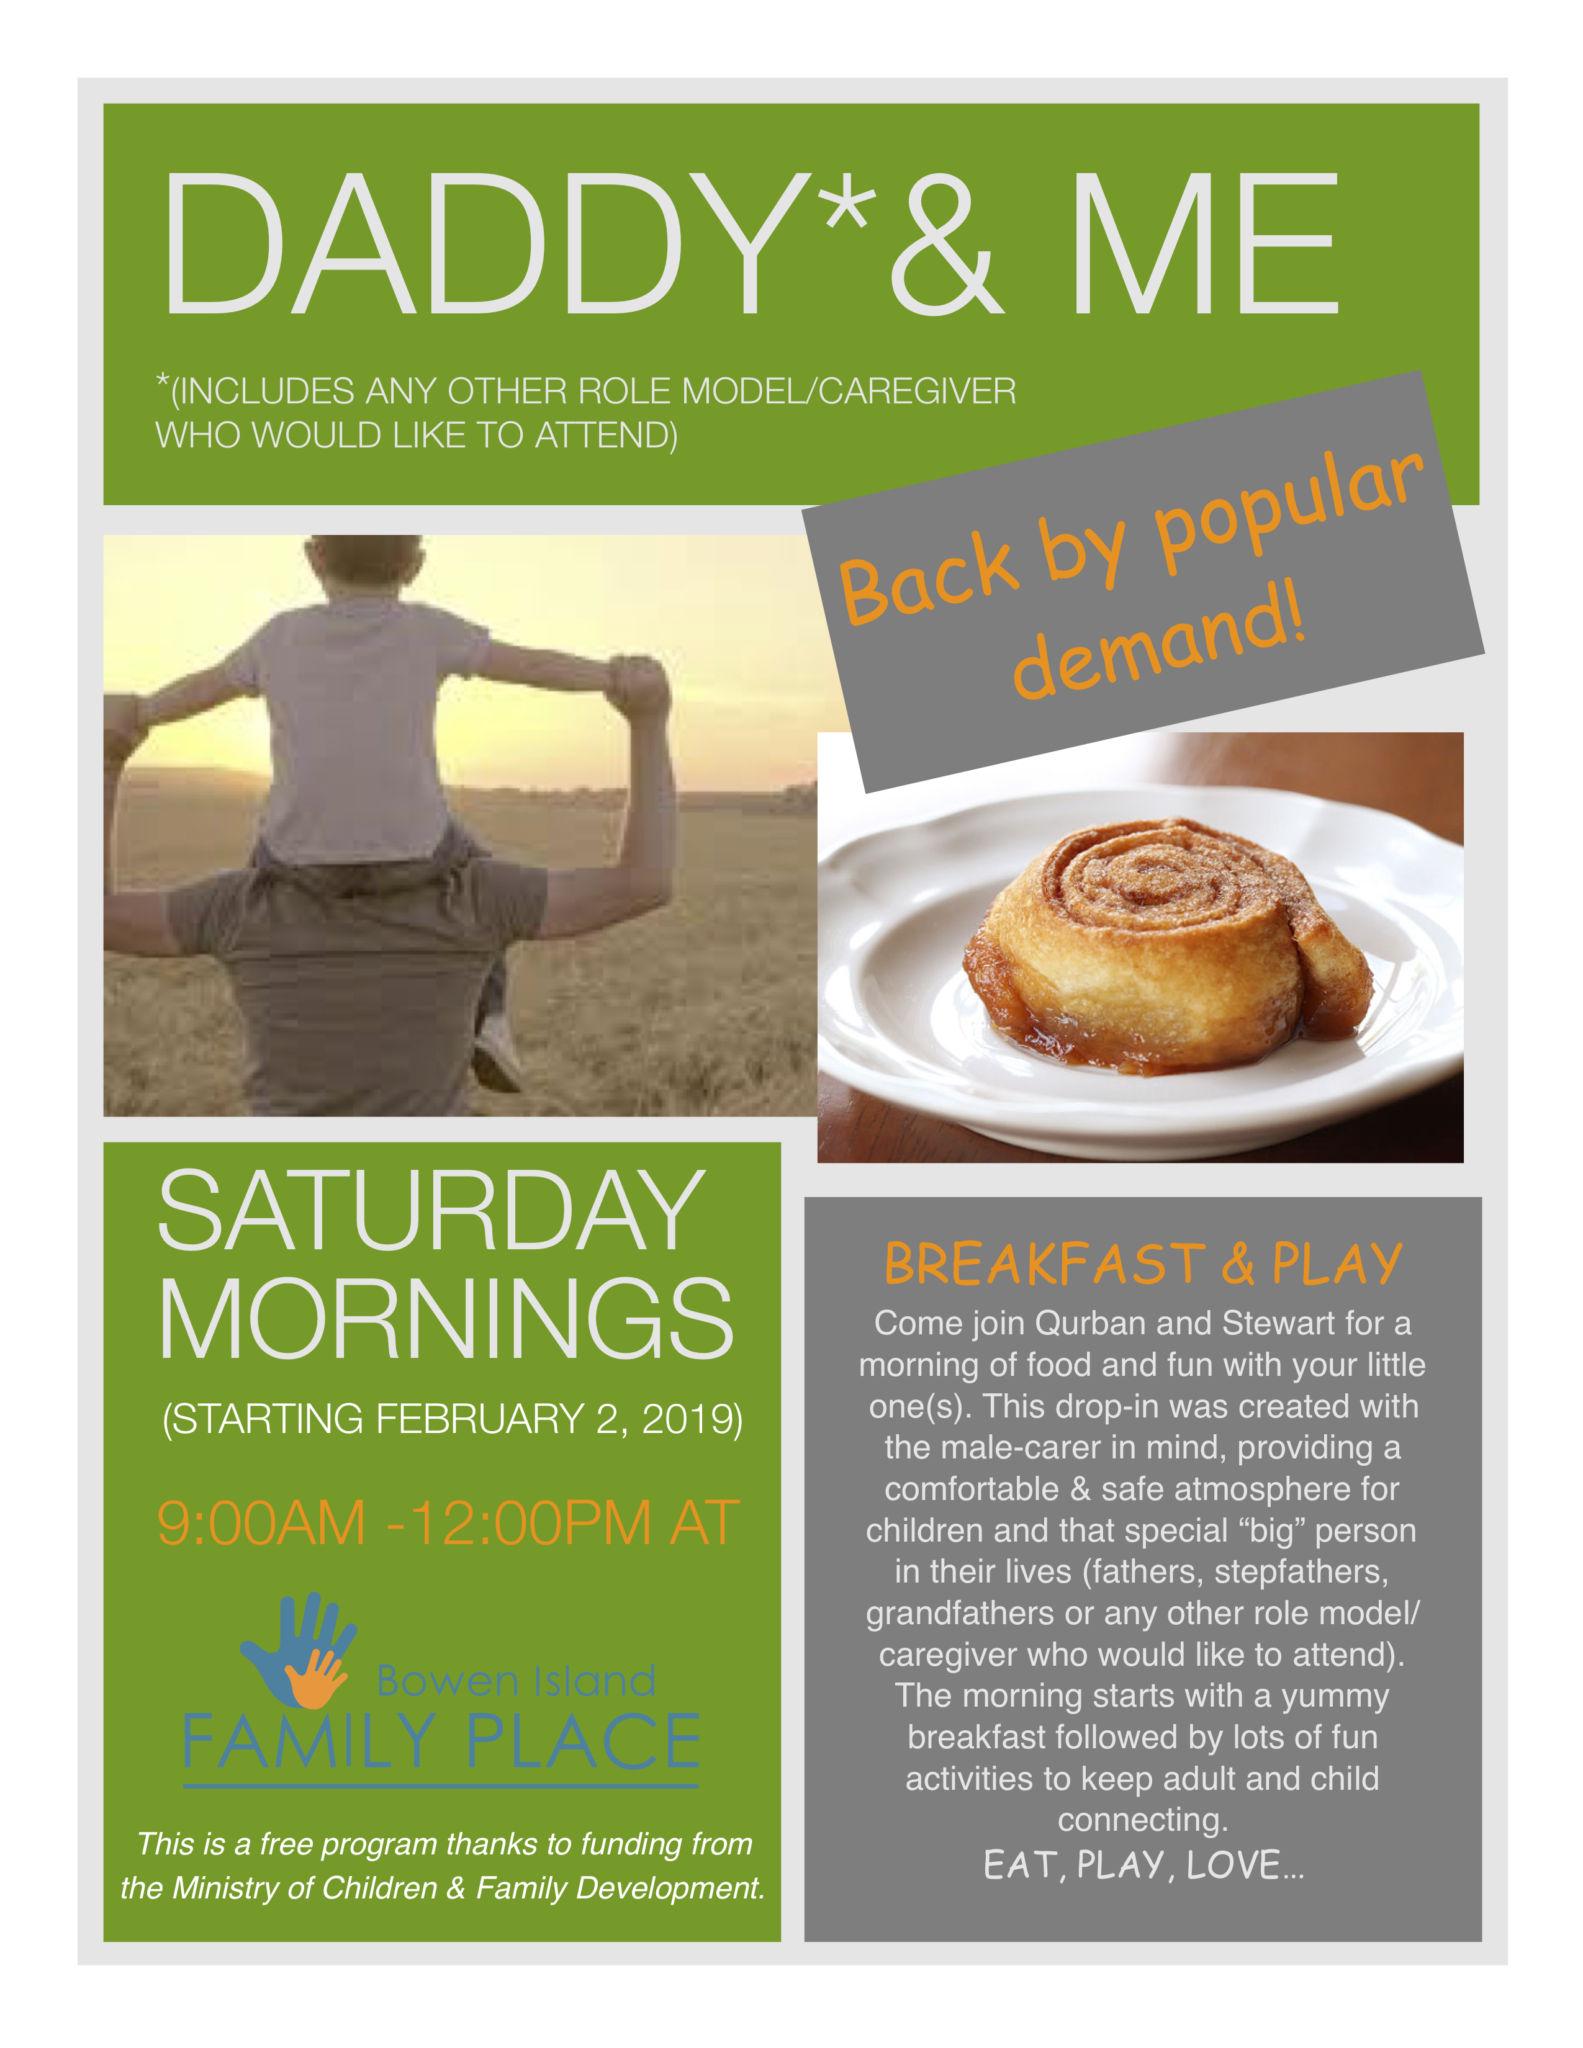 Daddy & Me is back!